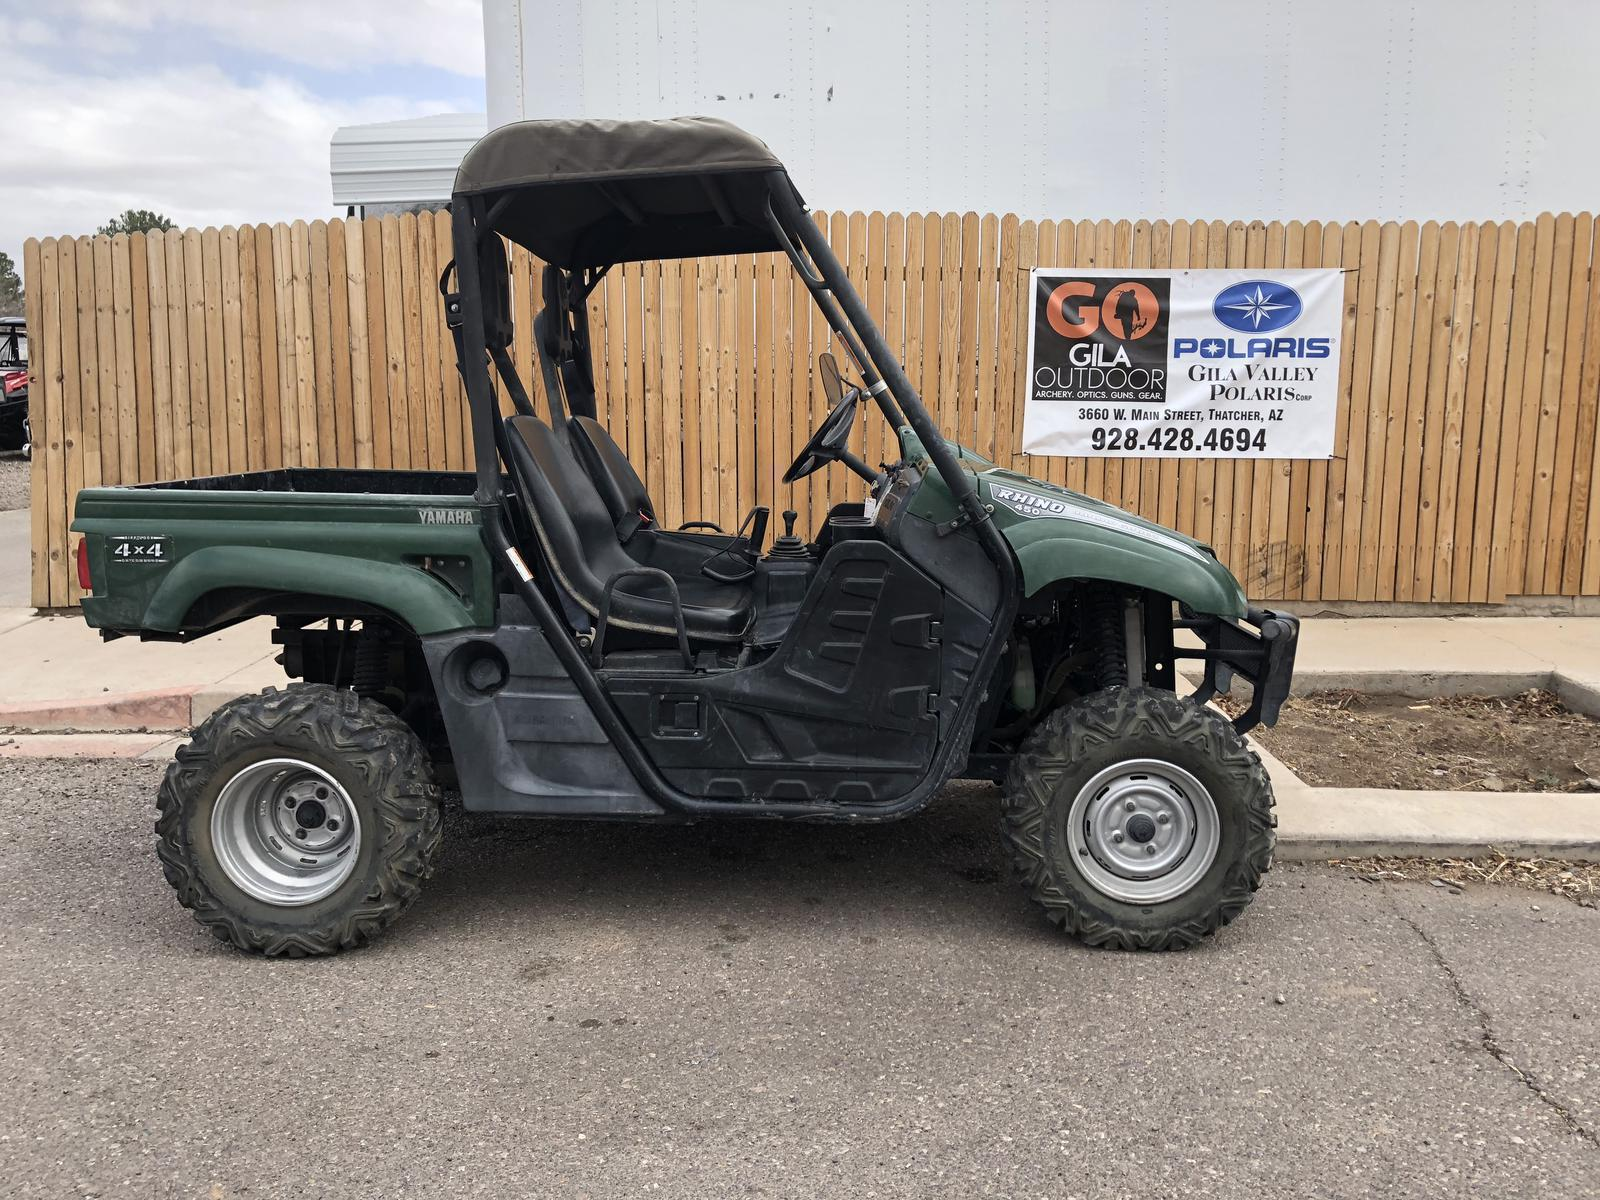 2007 Yamaha Rhino 450 Auto 4x4 for sale in Thatcher AZ Gila